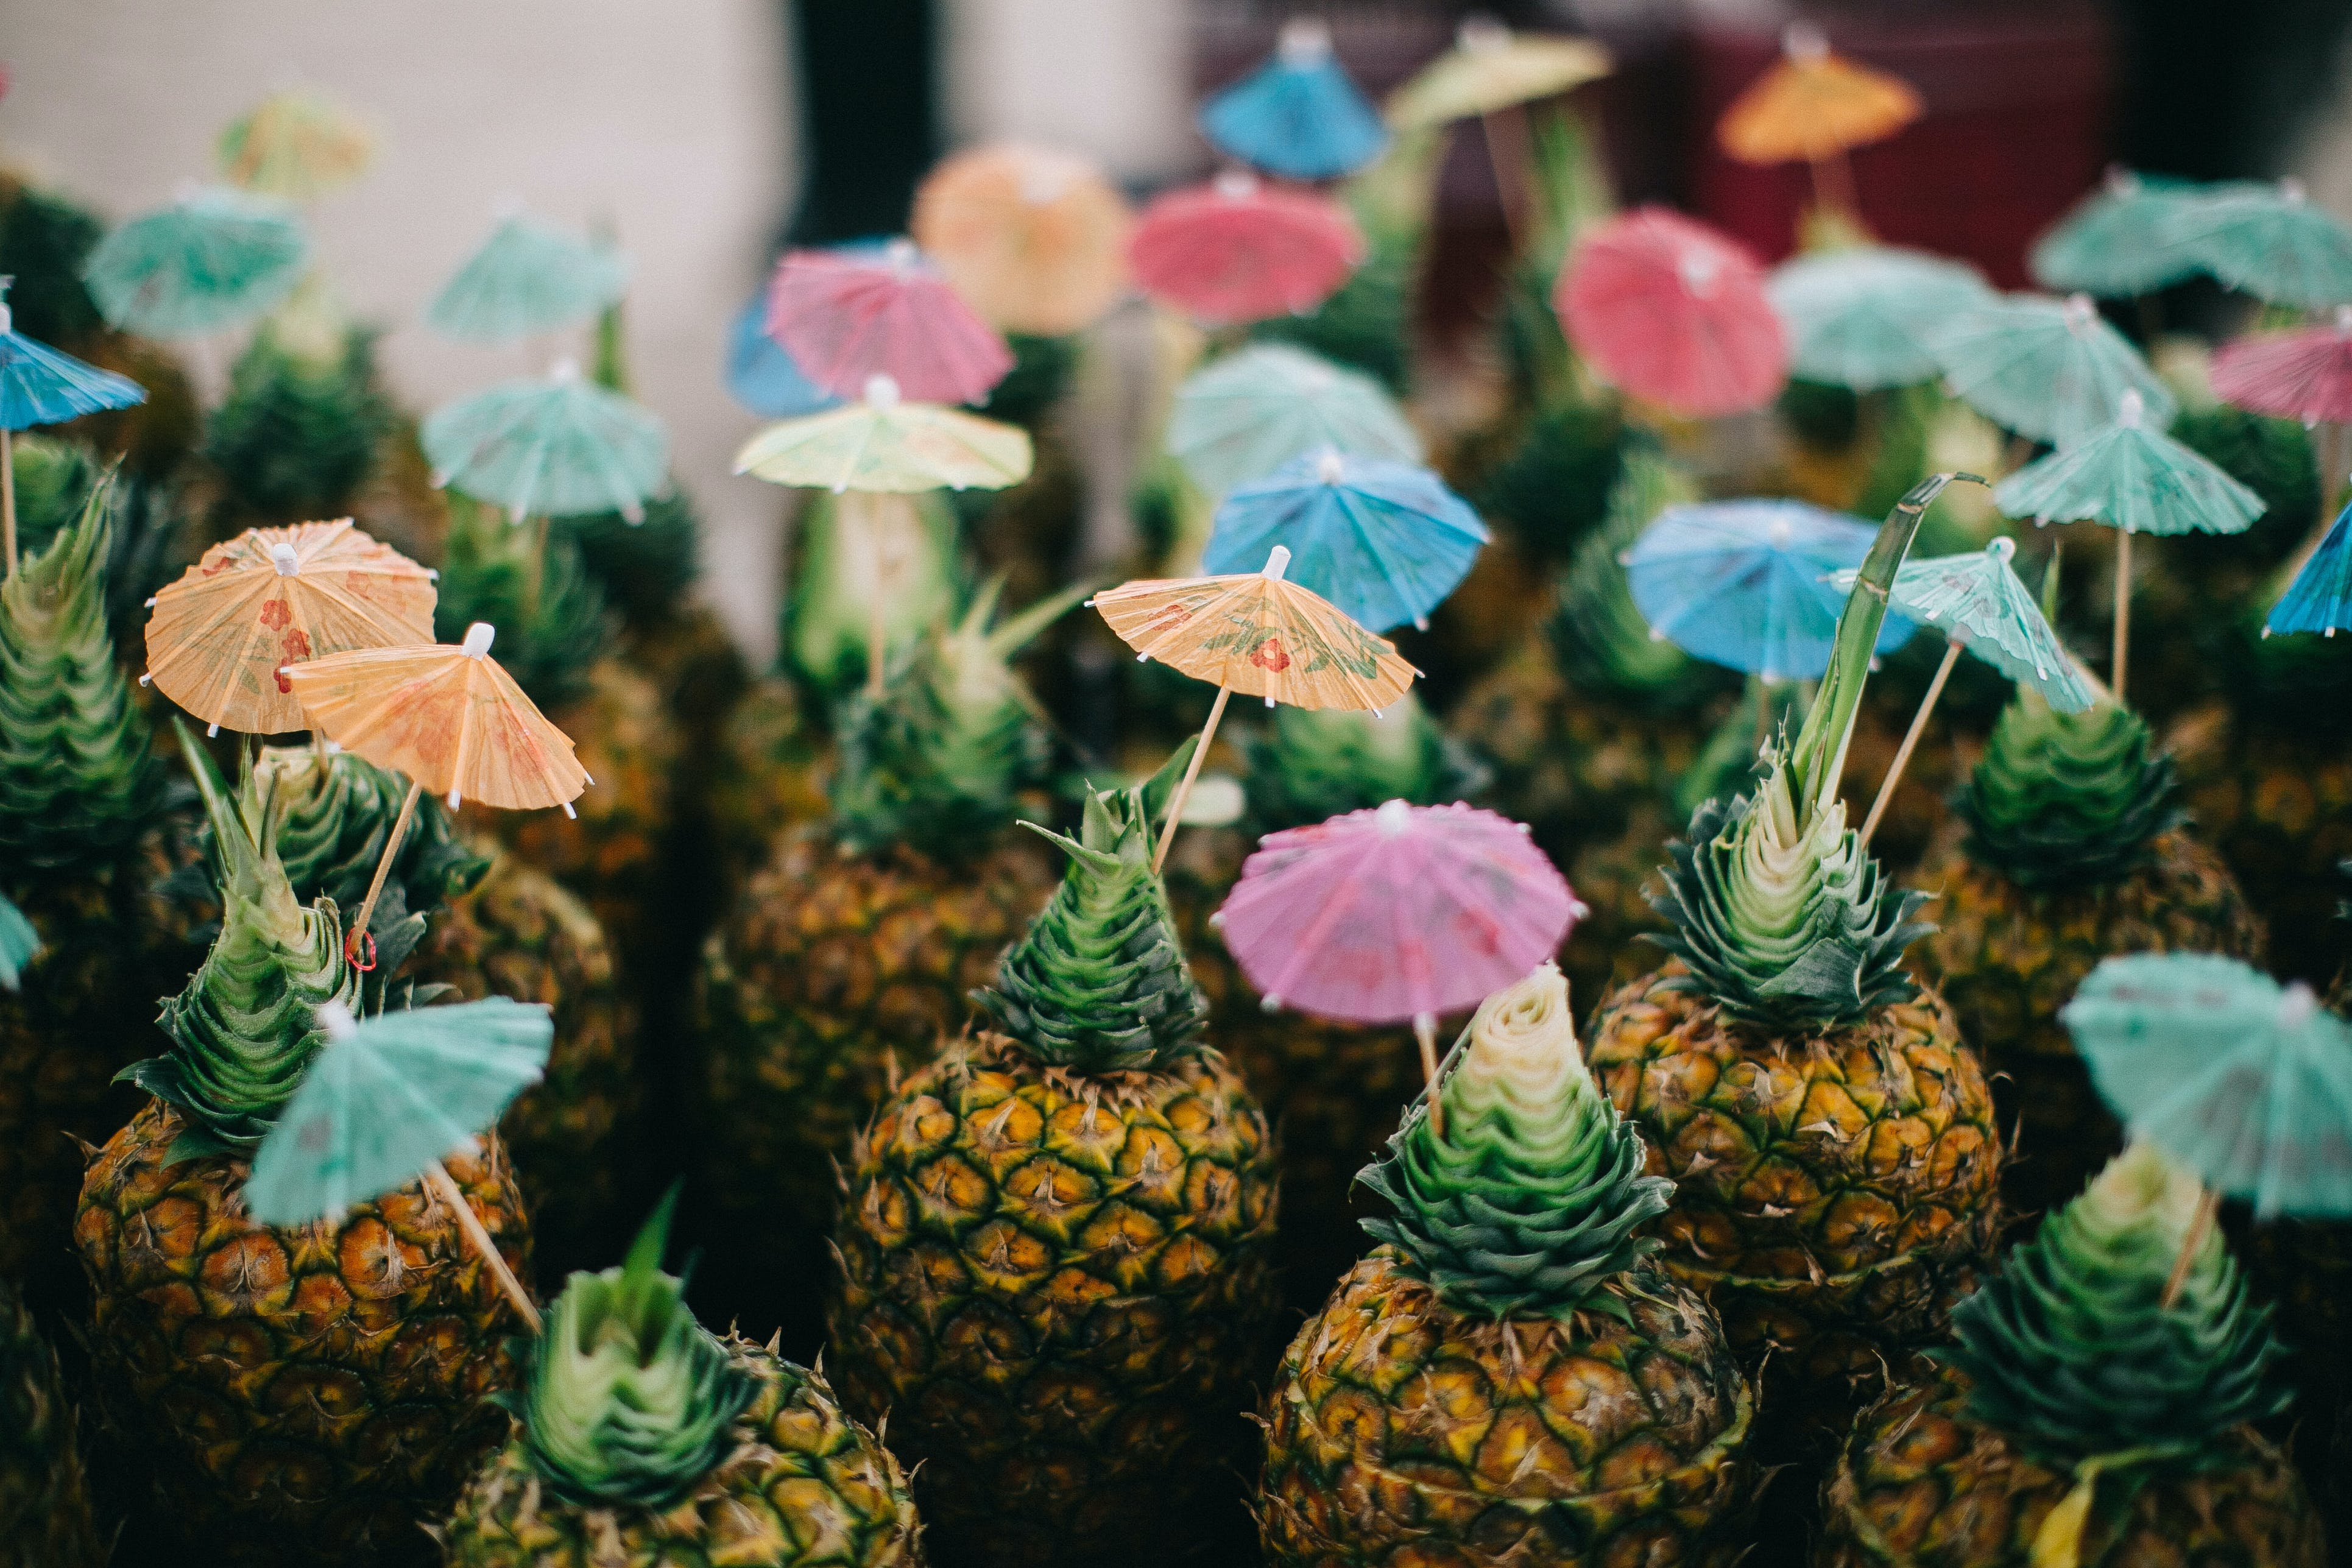 Pineapple Fruits With Paper Umbrellas On Top